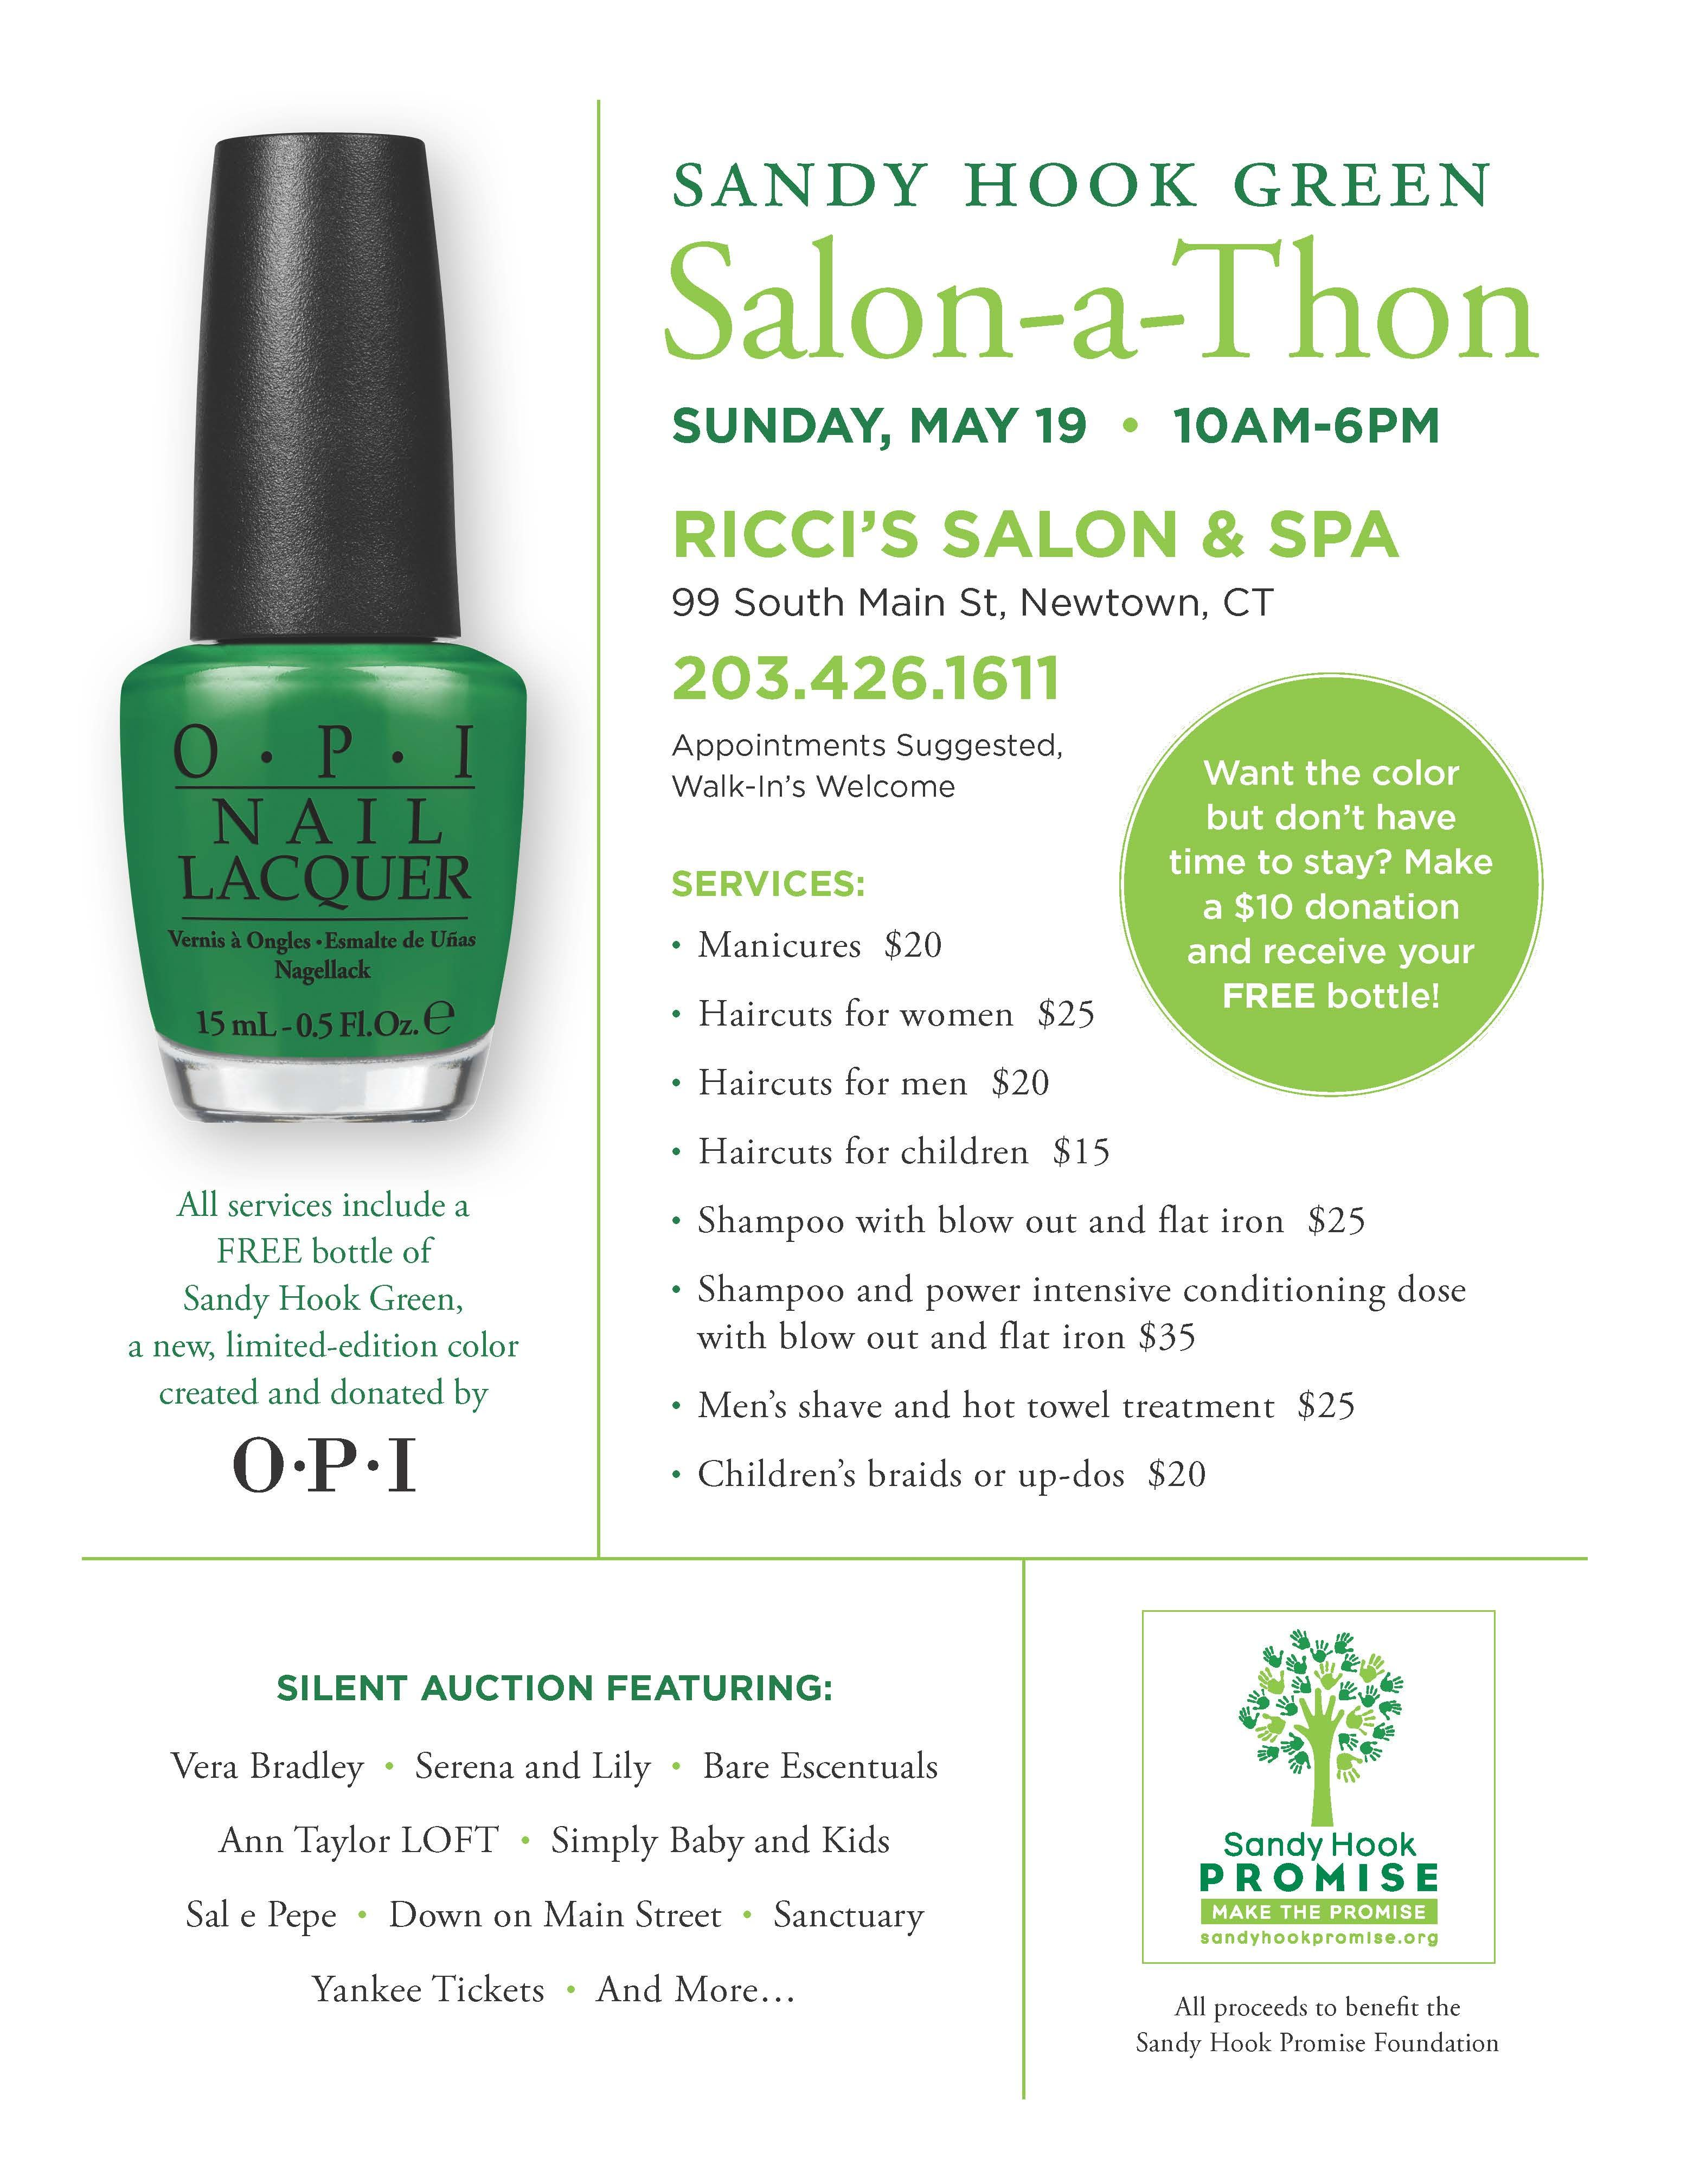 Mens haircut newtown save the date may  is the sandy hook green salonathon